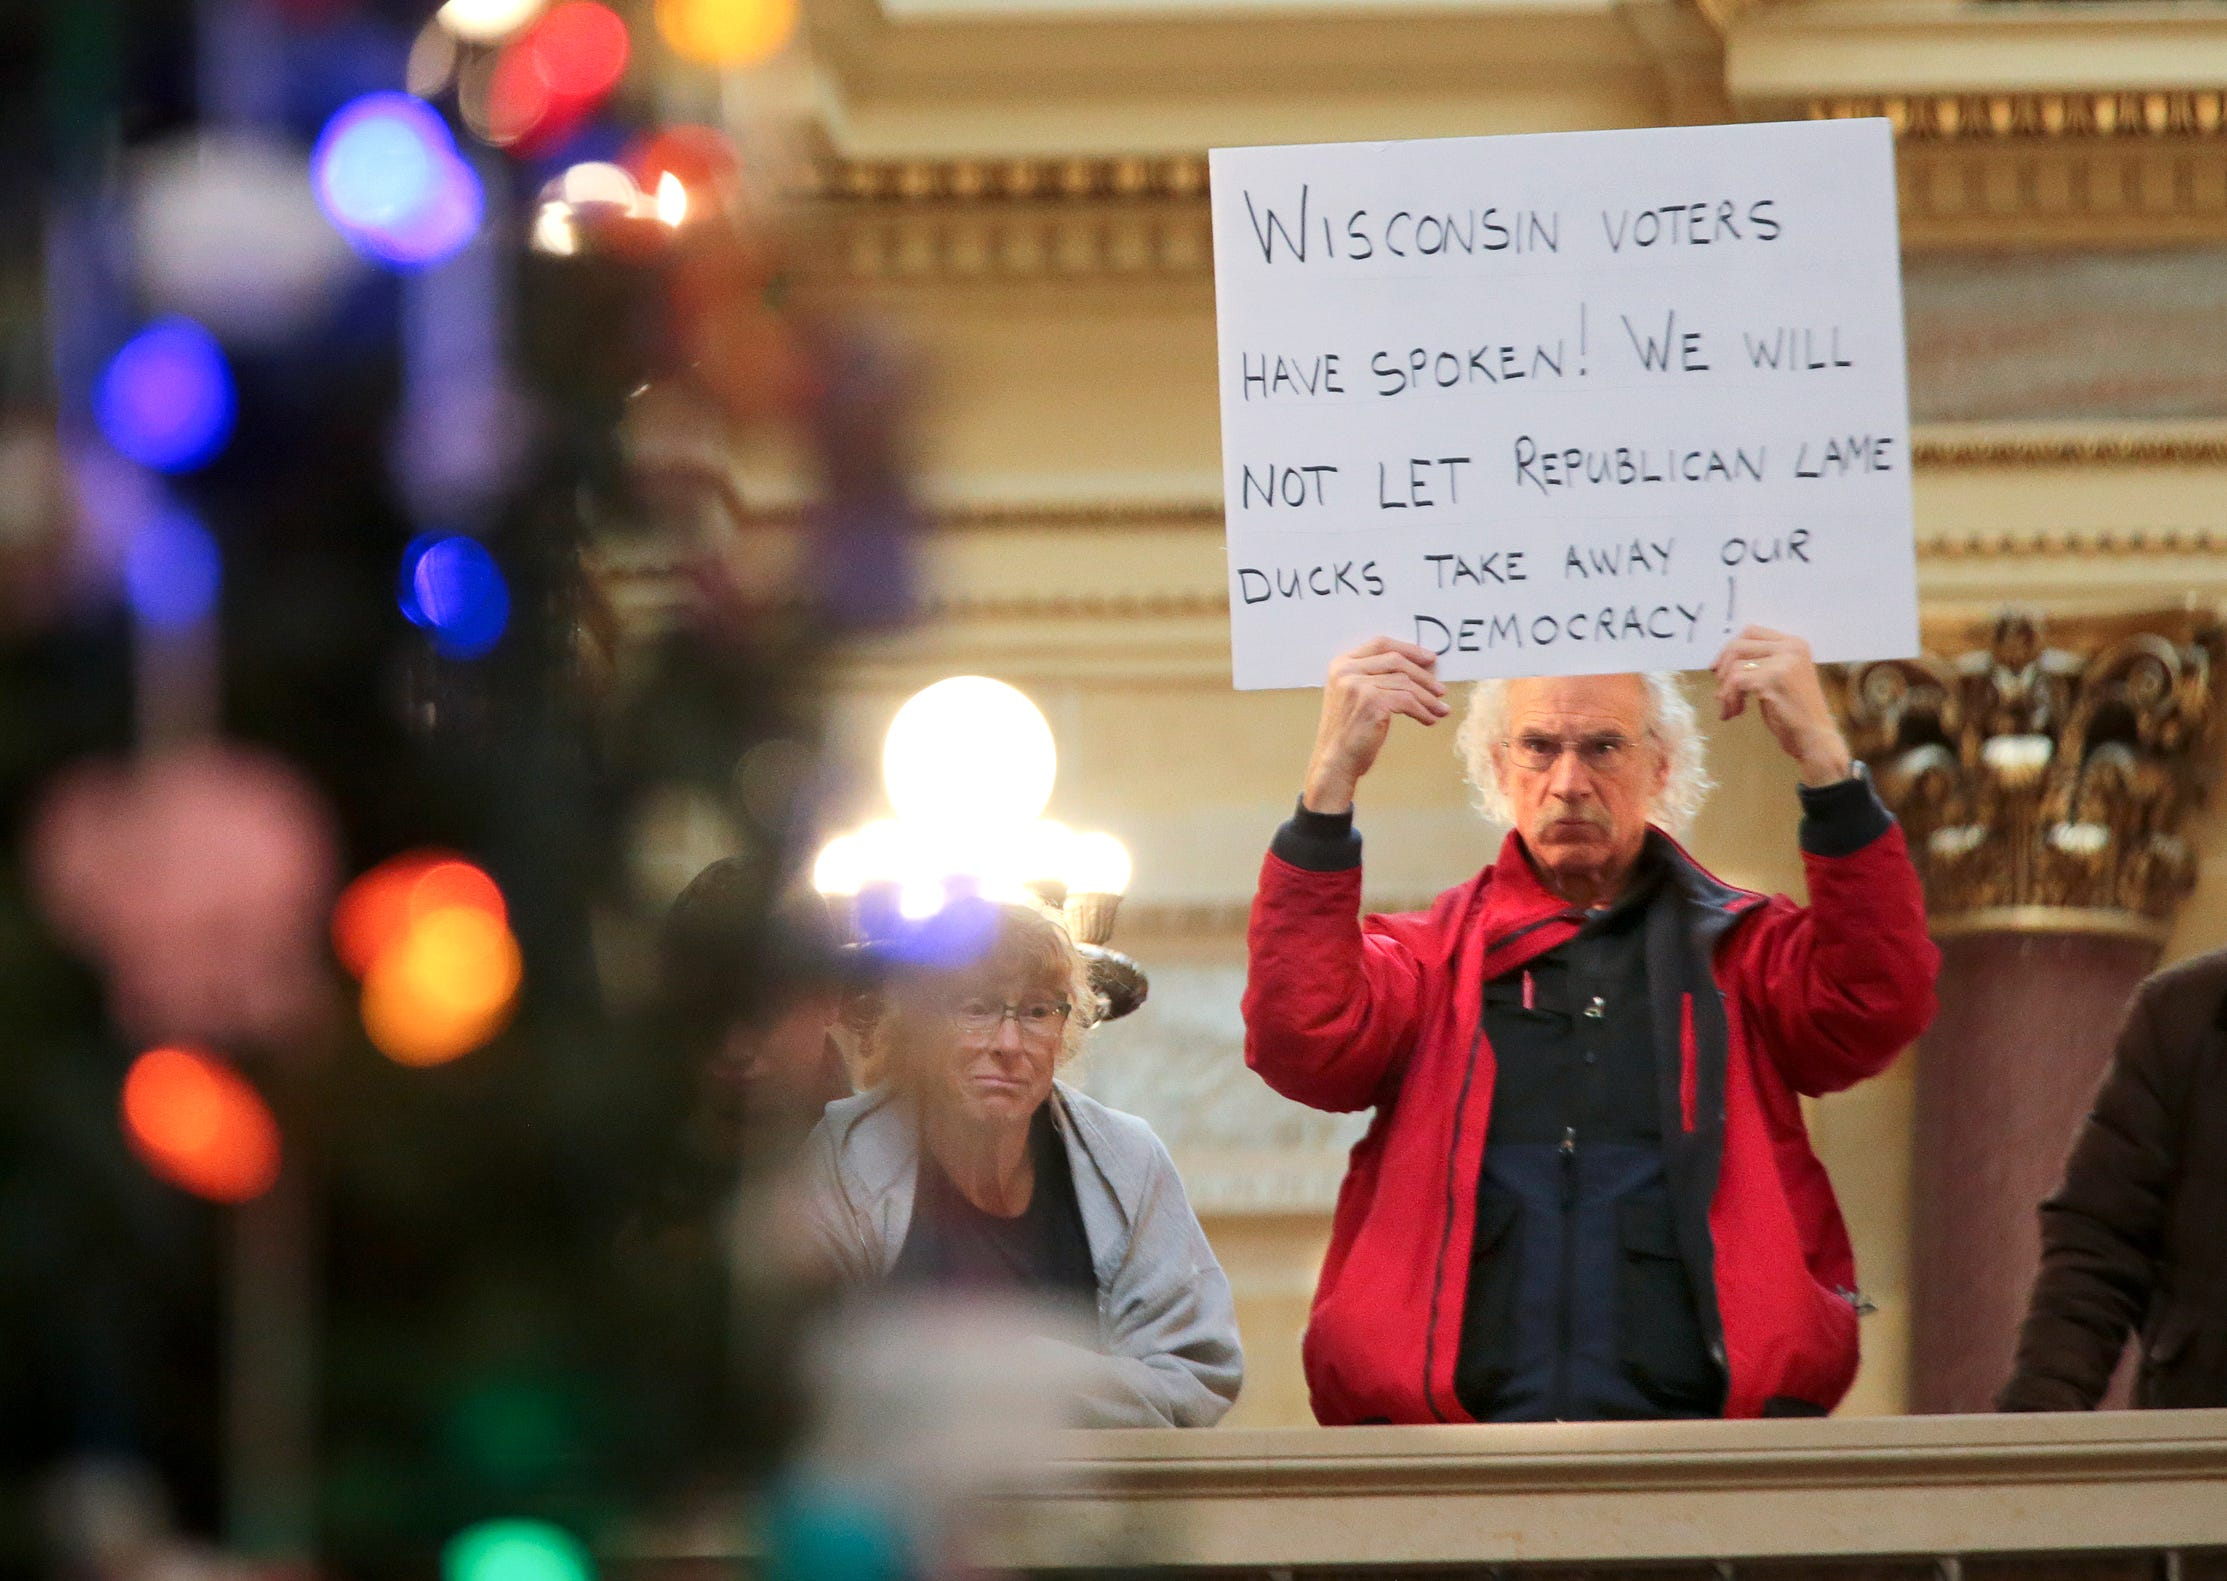 Bob Kinosian, from Wauwatosa, Wis., holds up a sign during the state Christmas Tree lighting ceremony in state Capitol Rotunda on Dec. 4, 2018, in Madison, Wis.